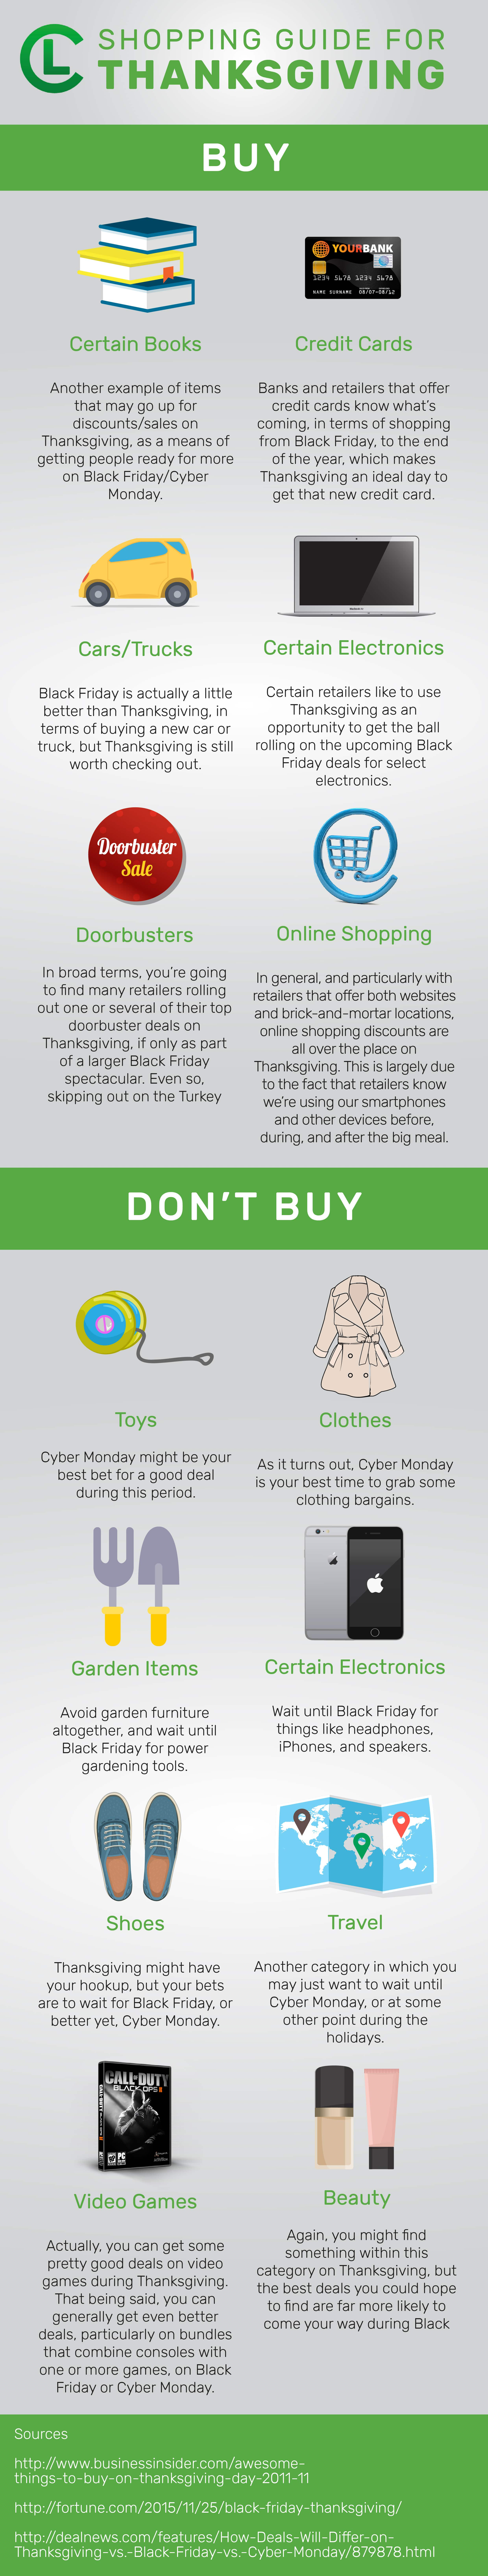 Shopping Guide For Thanksgiving Infographic